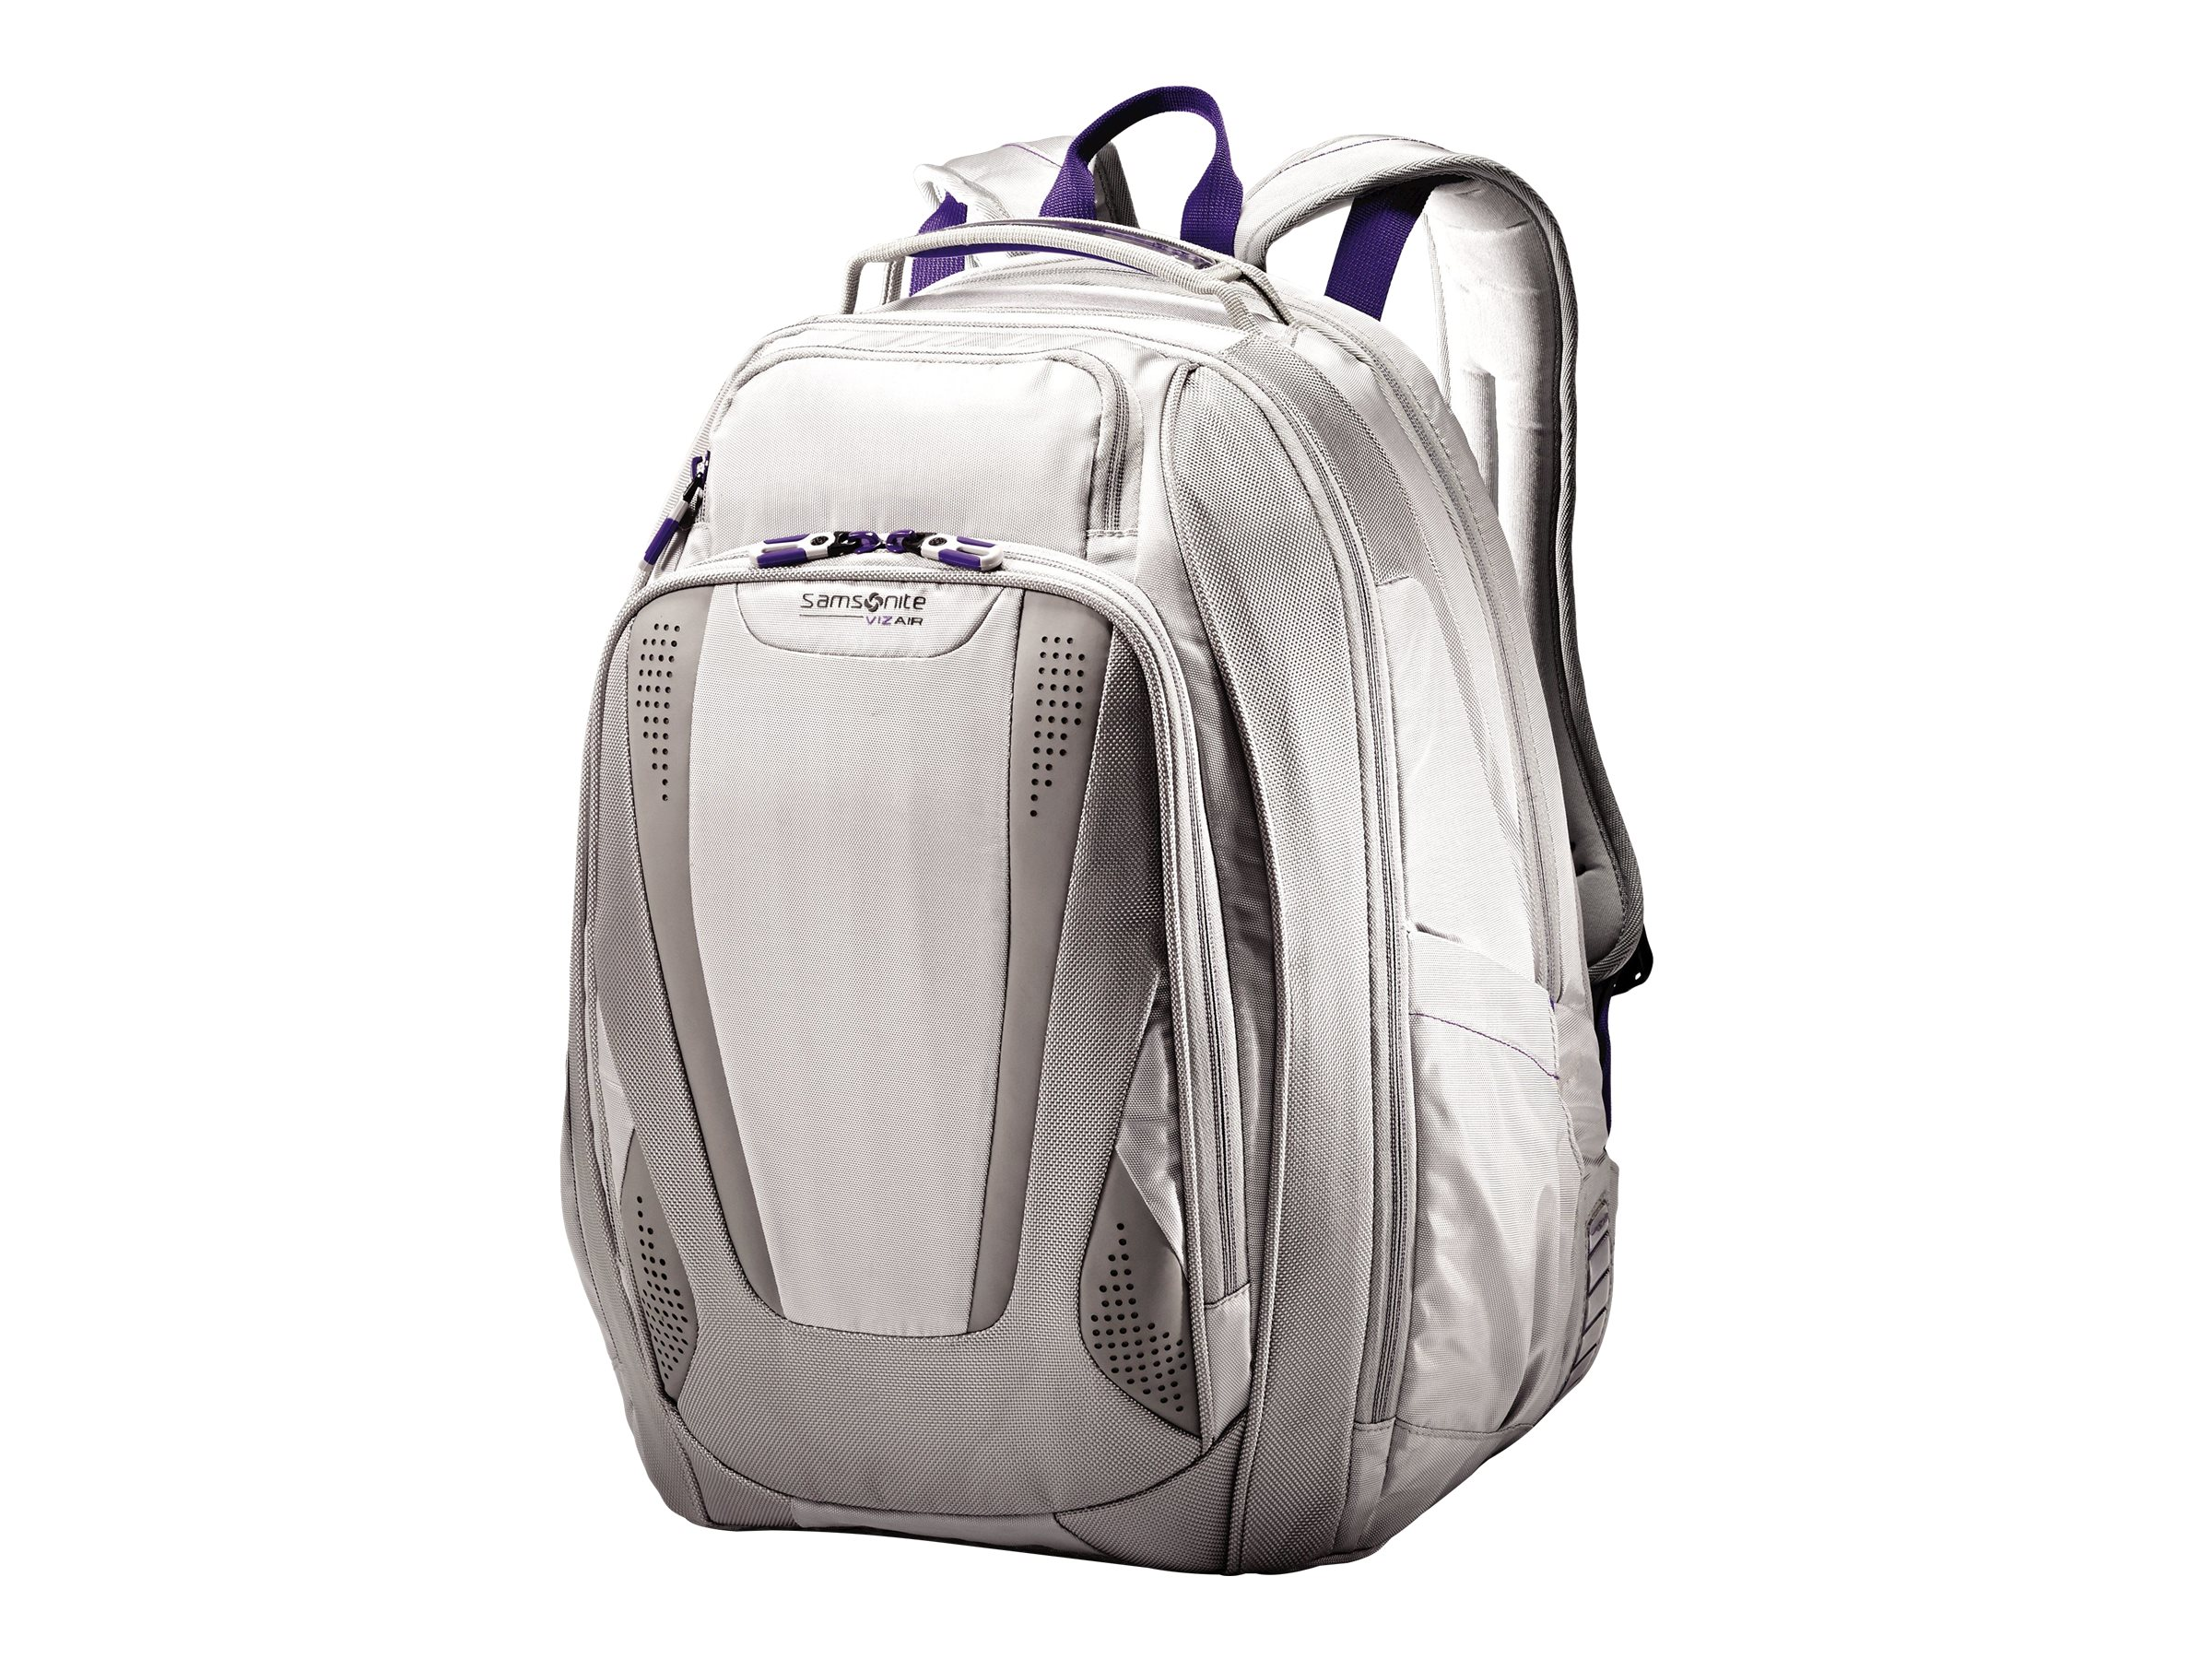 Stephen Gould Viz Air Backpack 15.6, Silver w  Purple Trim, 66256-2668